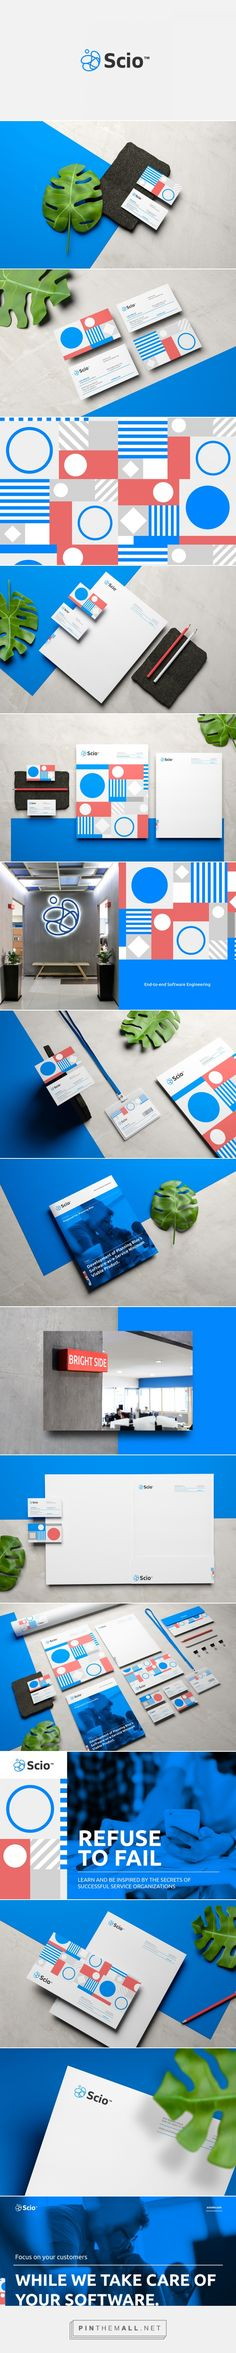 Scio Software Development Company Branding by Menta Picante | Fivestar Branding Agency – Design and Branding Agency & Curated Inspiration Gallery